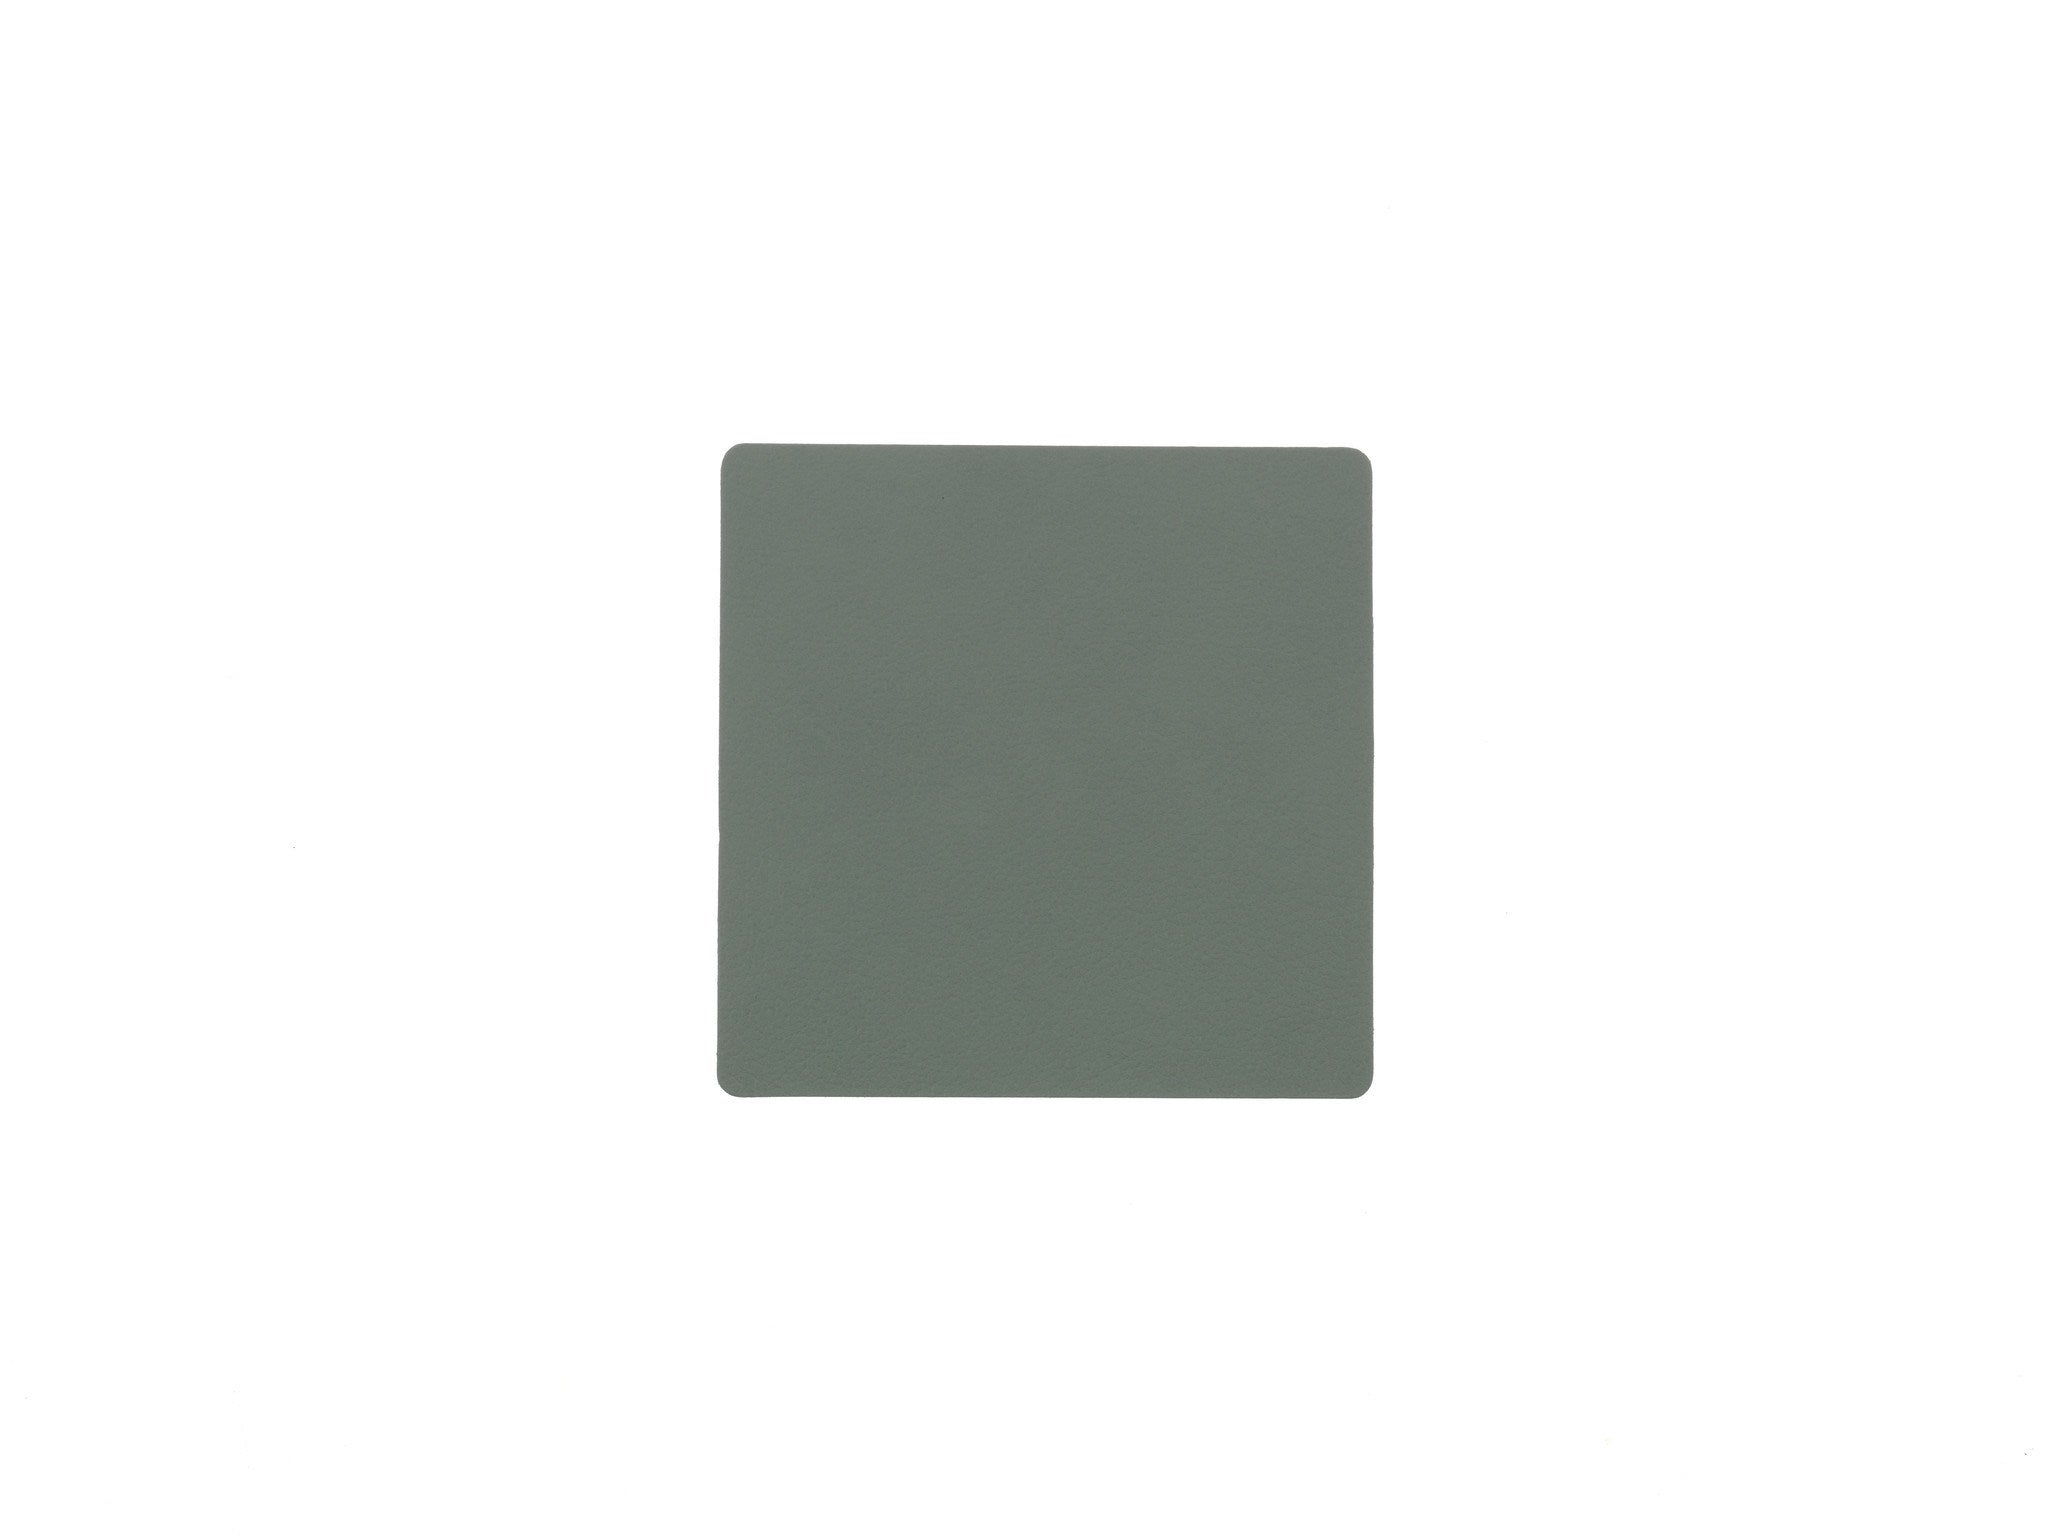 LindDNA GLASSMAT SQUARE pastel green/Nupo - Eclectic Cool  - 1